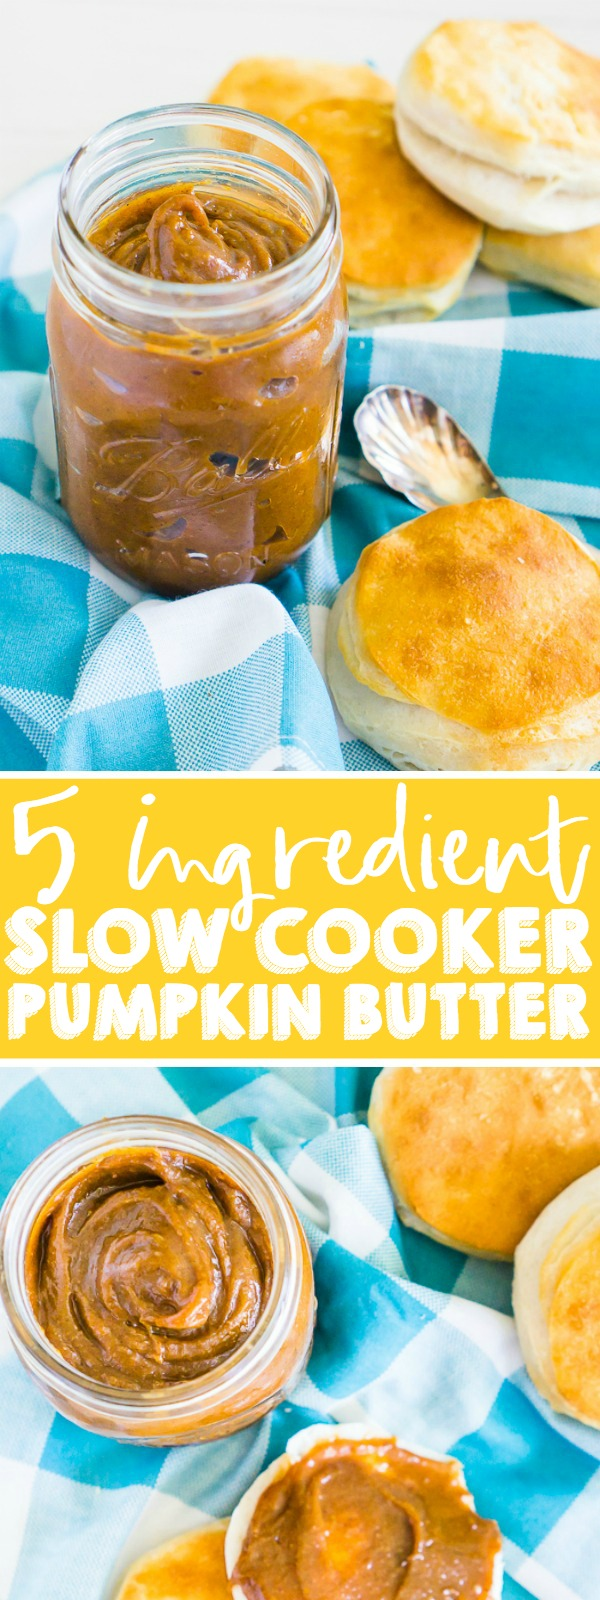 This 5 ingredient Slow Cooker Pumpkin Butter is absolutely addicting and a fall pumpkin recipe staple for us because it makes the perfect ingredient for fall baked goods, main dish recipes and even morning toast! | THE LOVE NERDS #pumpkinrecipe